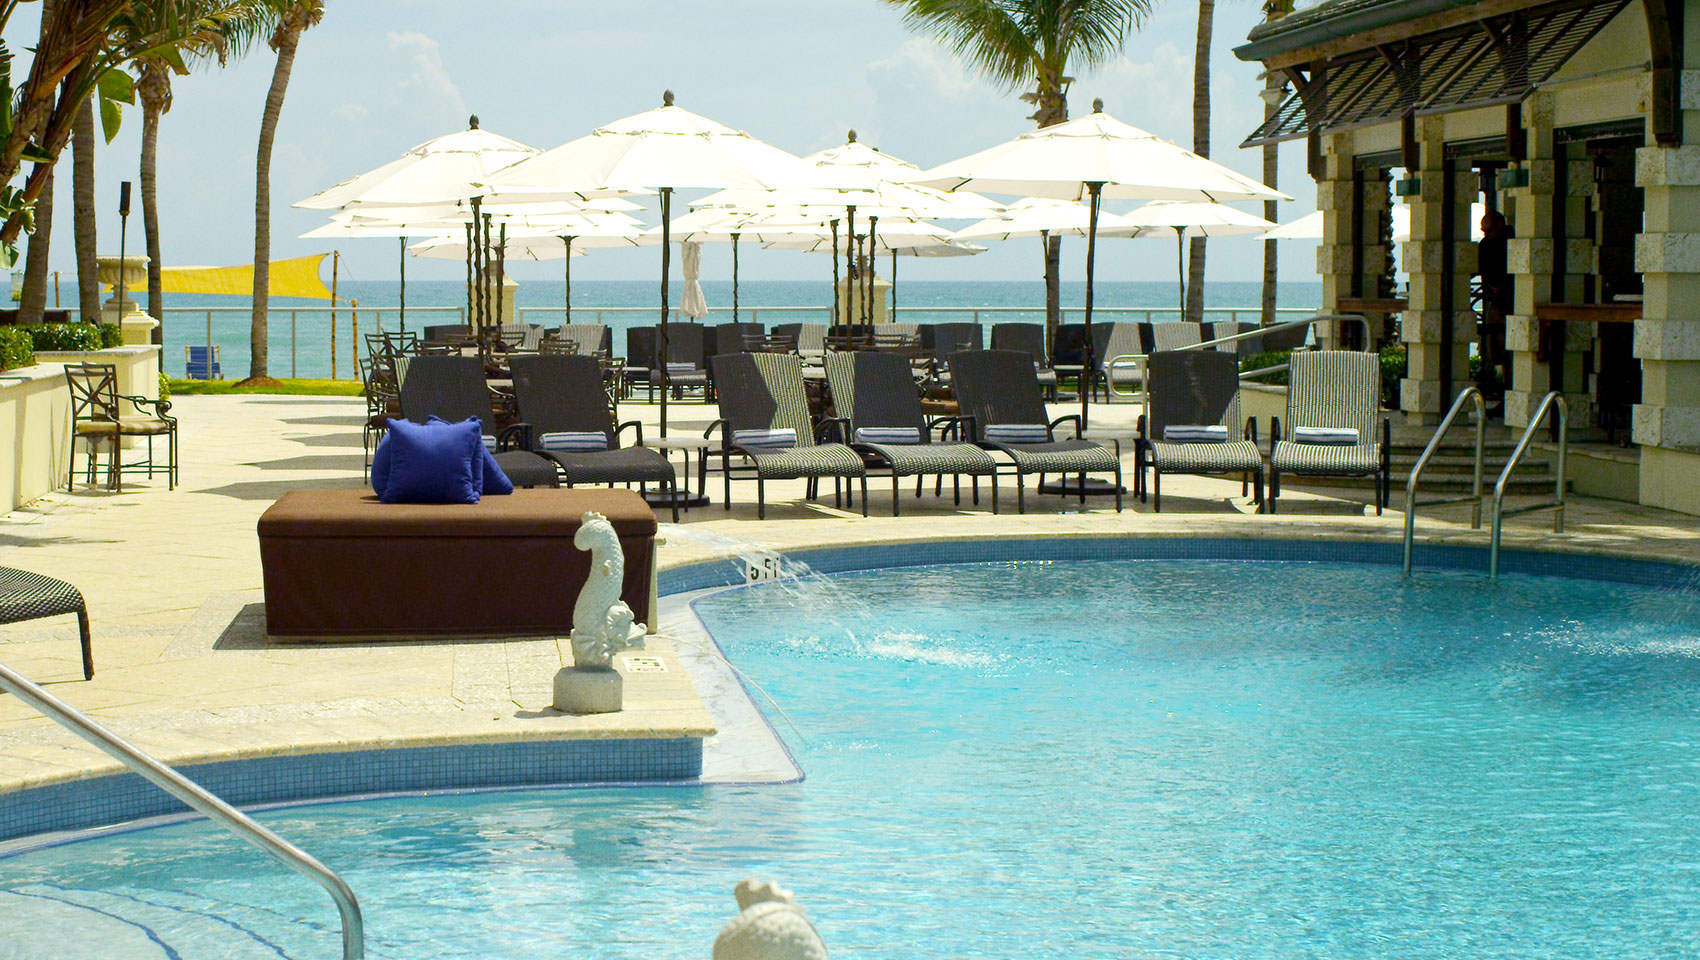 Kimpton Vero Beach Hotel & Spa pool deck